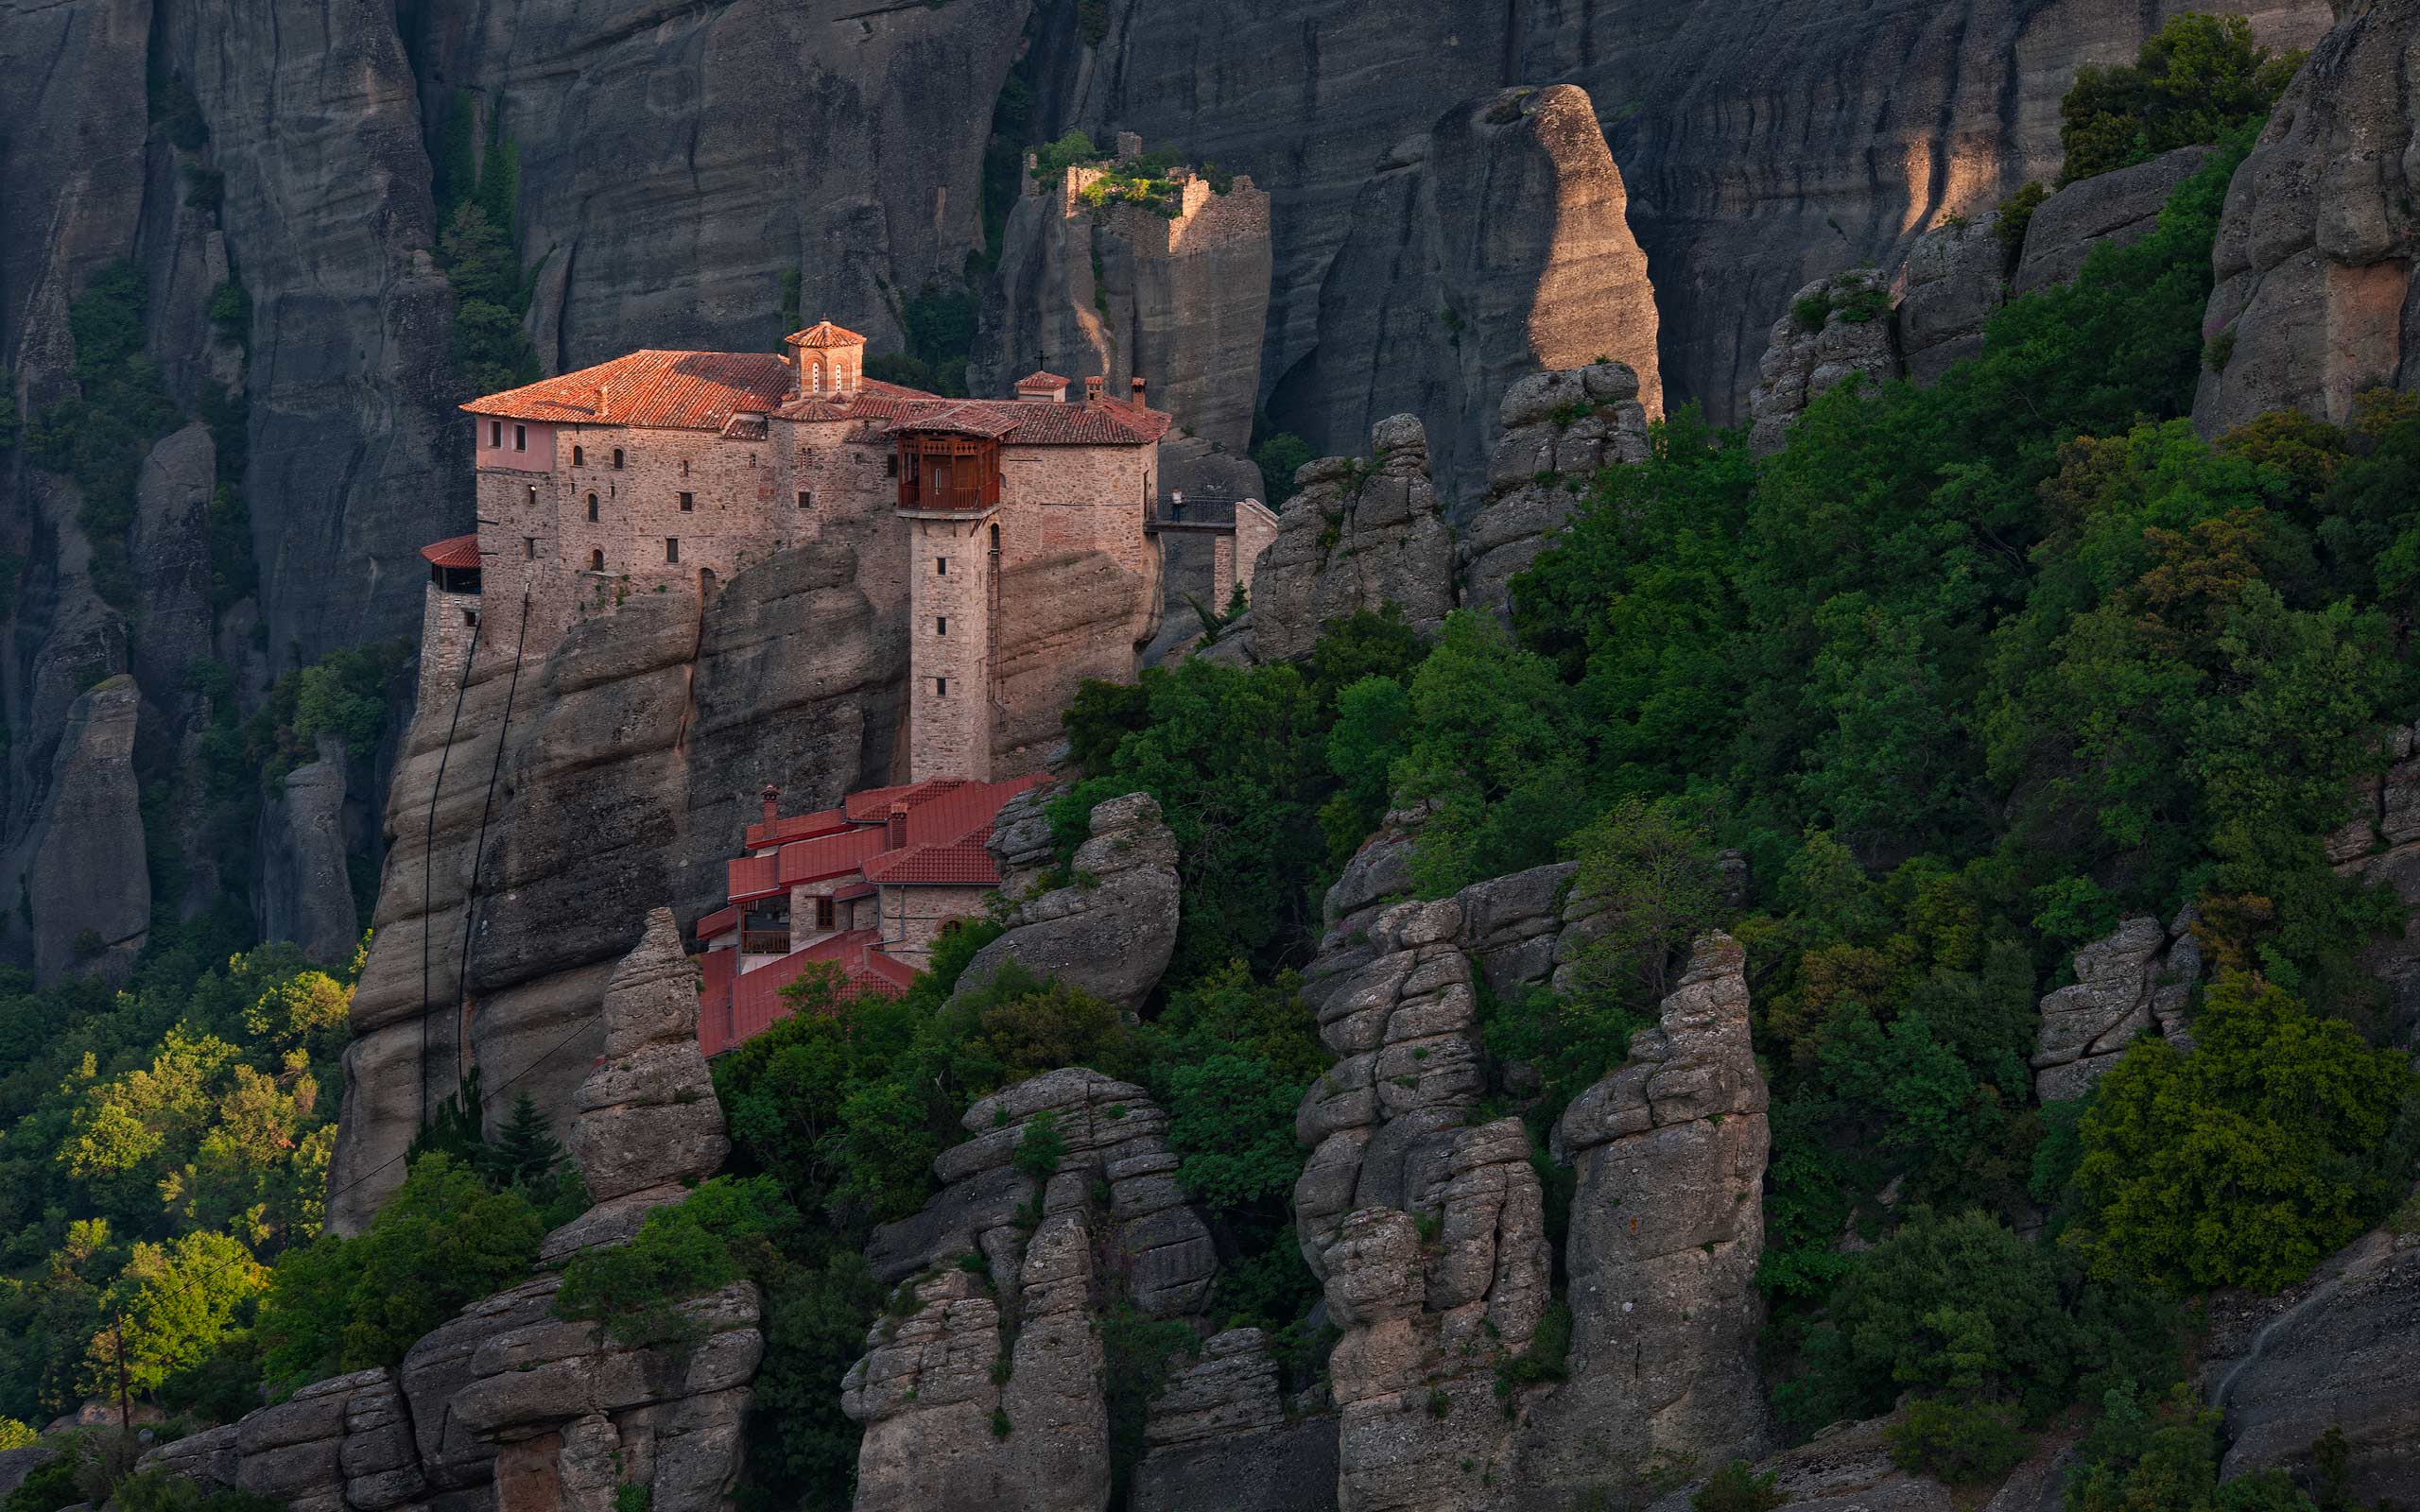 Roussanou Nunnery at sunrise, Meteora, Thessaly, Greece - Meteora-Monasteries-Greece - Mike Reyfman Photography